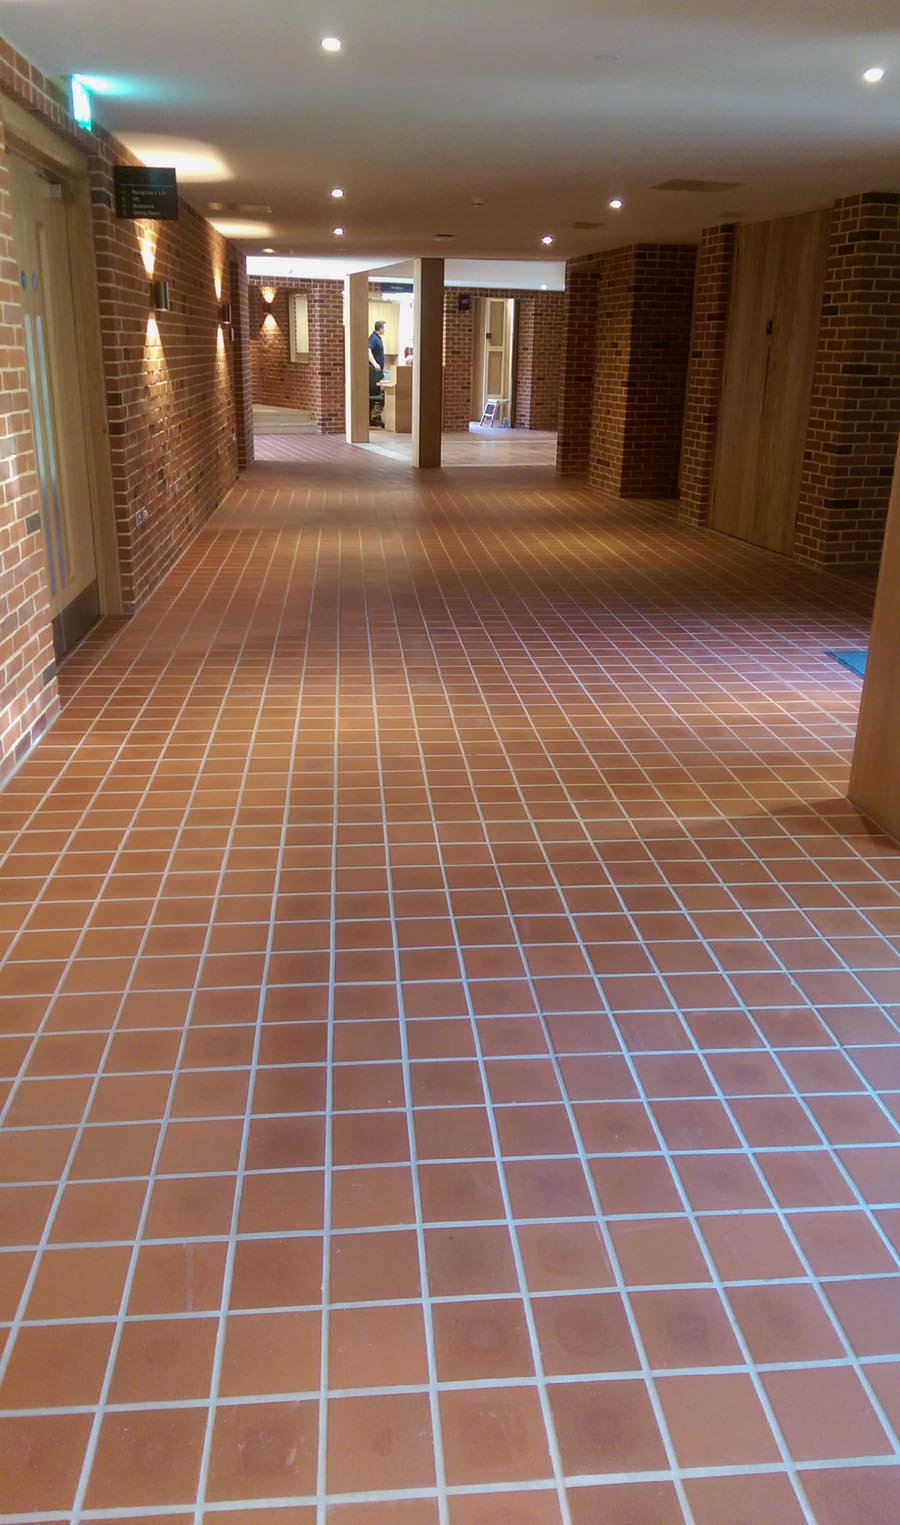 Gallery of dreadnought quarry tiles staffs red quarry tiles at jesus college cambridge dailygadgetfo Images